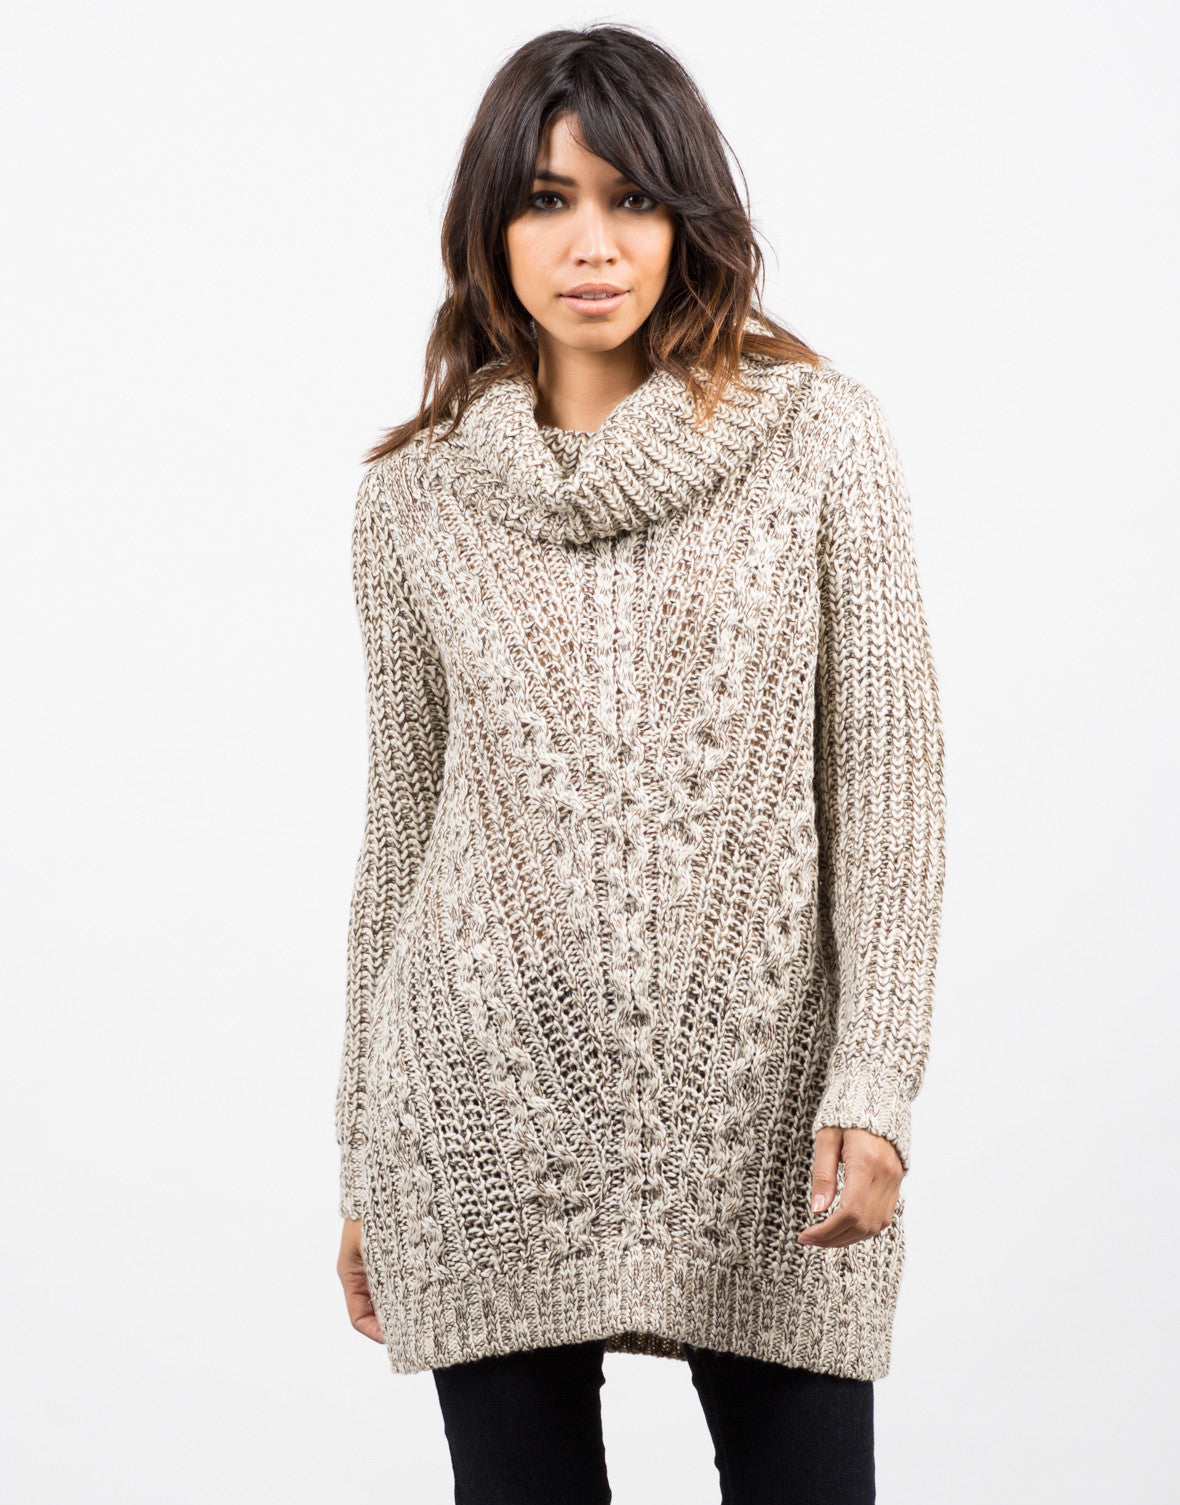 Front View of Cozy Knit Turtleneck Sweater